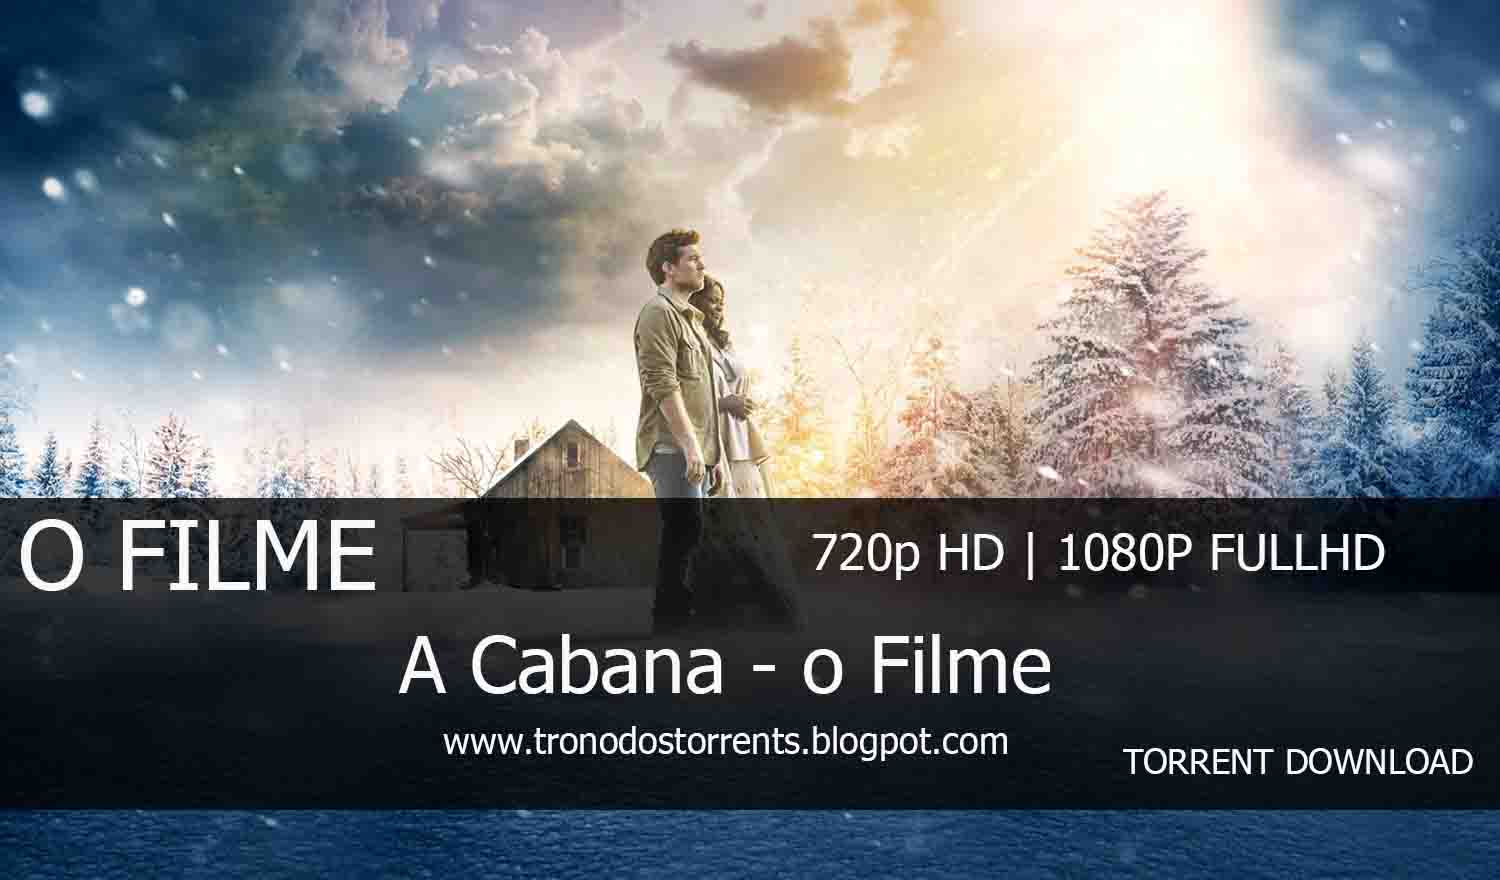 [ Torrent Filme ]  Download - A cabana - O filme– 720p | 1080p Dual Áudio 5.1  , Trono dos torrents. Download de filmes em torrent